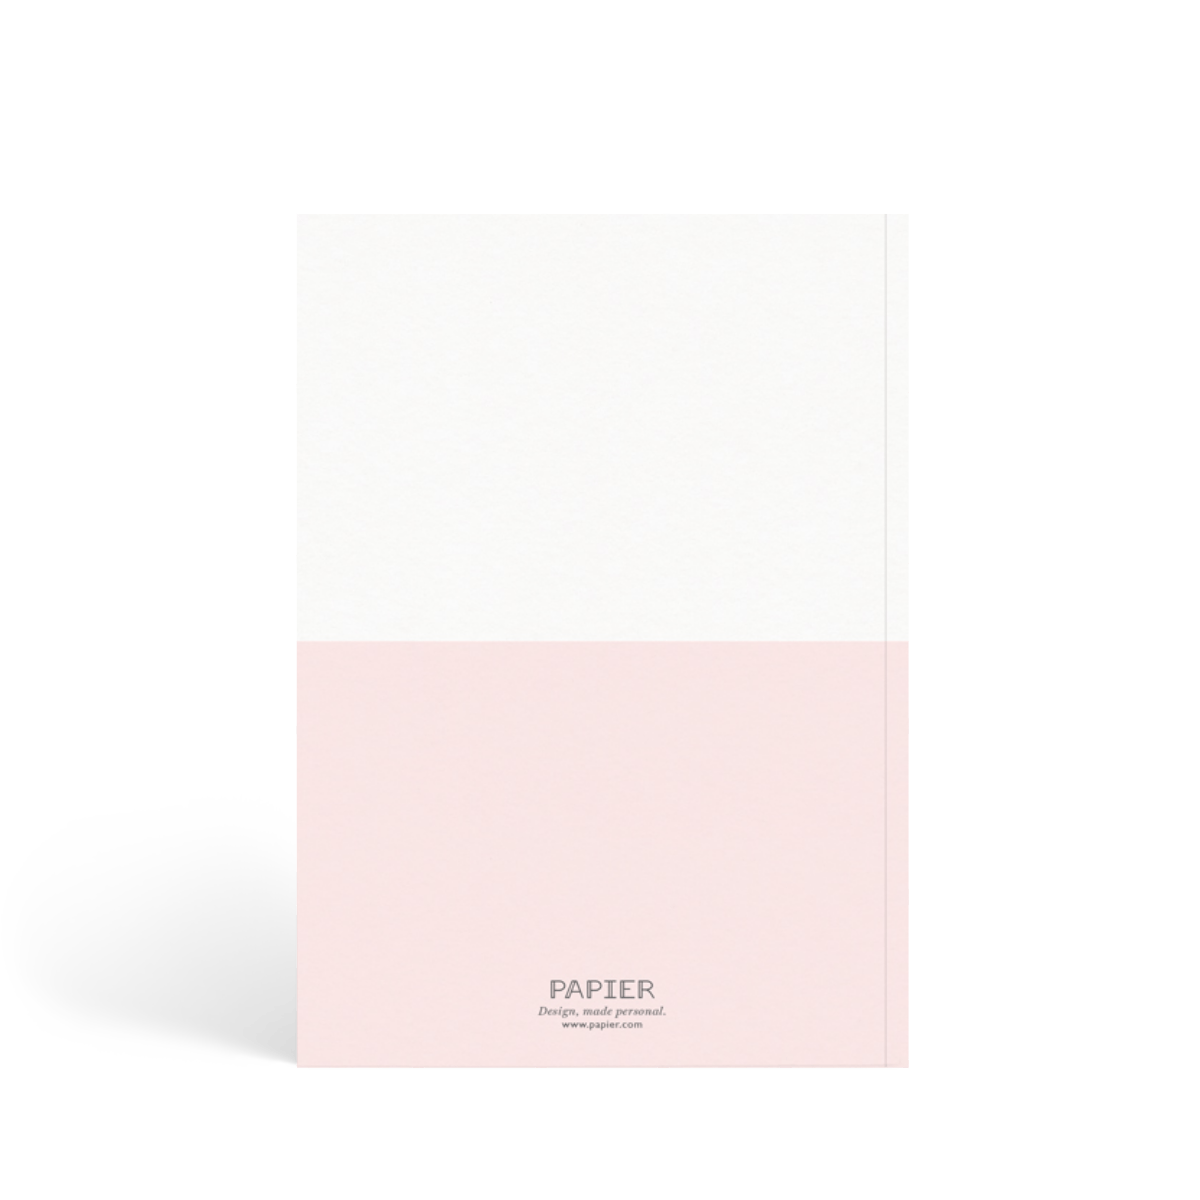 Https%3a%2f%2fwww.papier.com%2fproduct image%2f36344%2f5%2fdemi pink 9127 back 1523913598.png?ixlib=rb 1.1